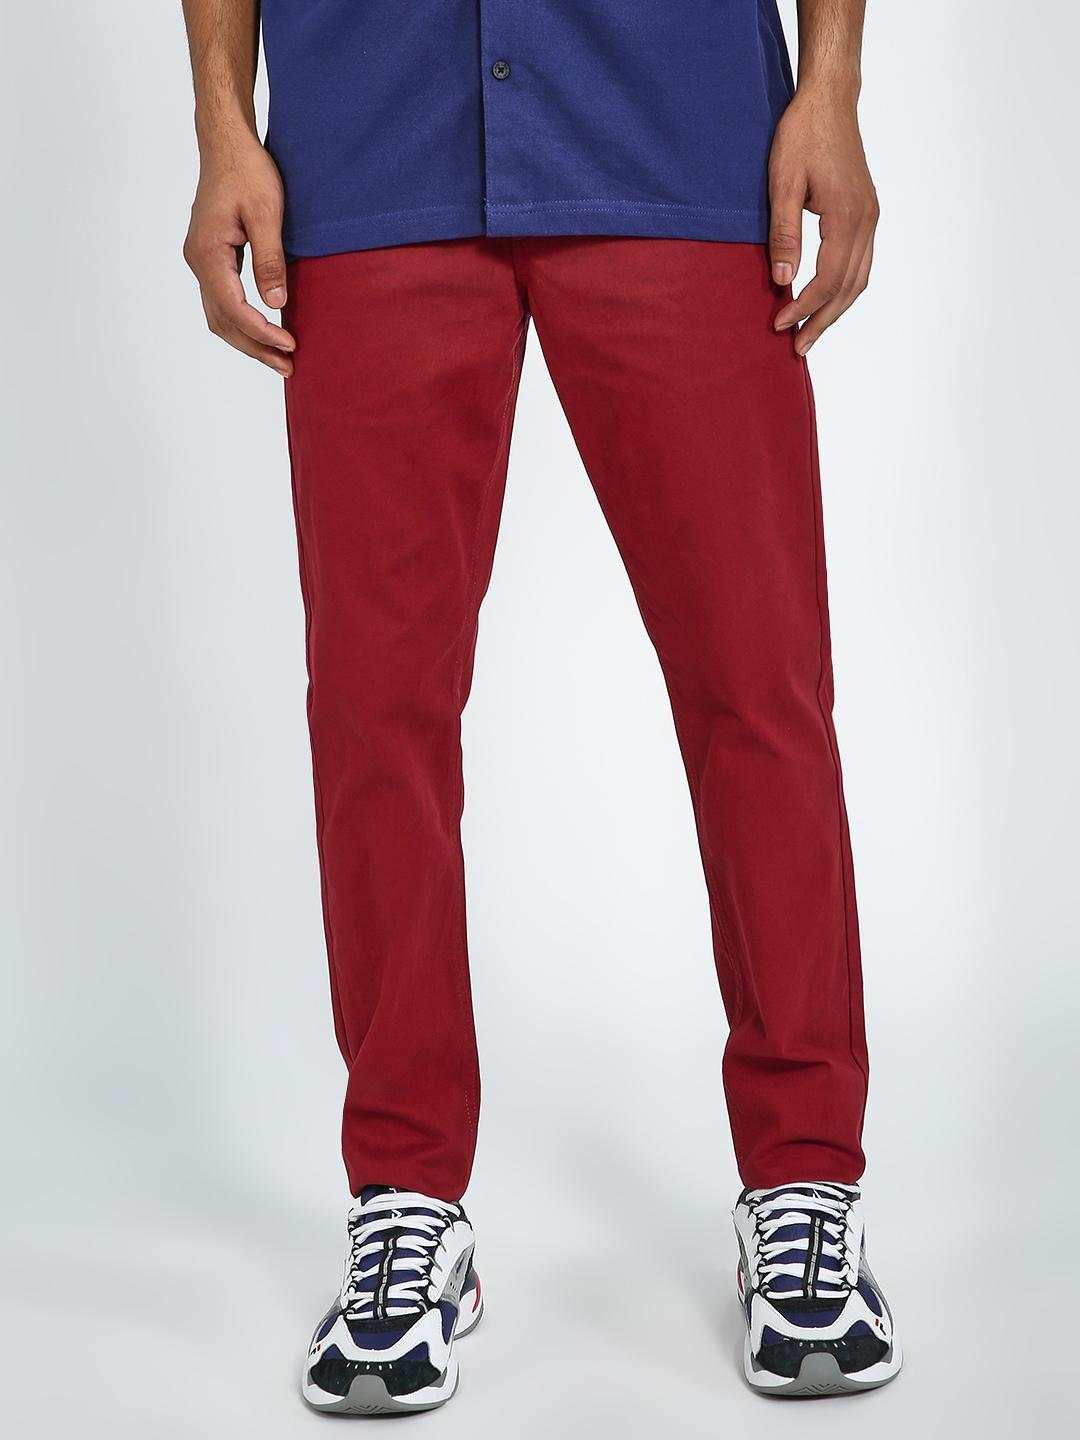 Blue Saint Red Basic Slim Fit Trousers 1